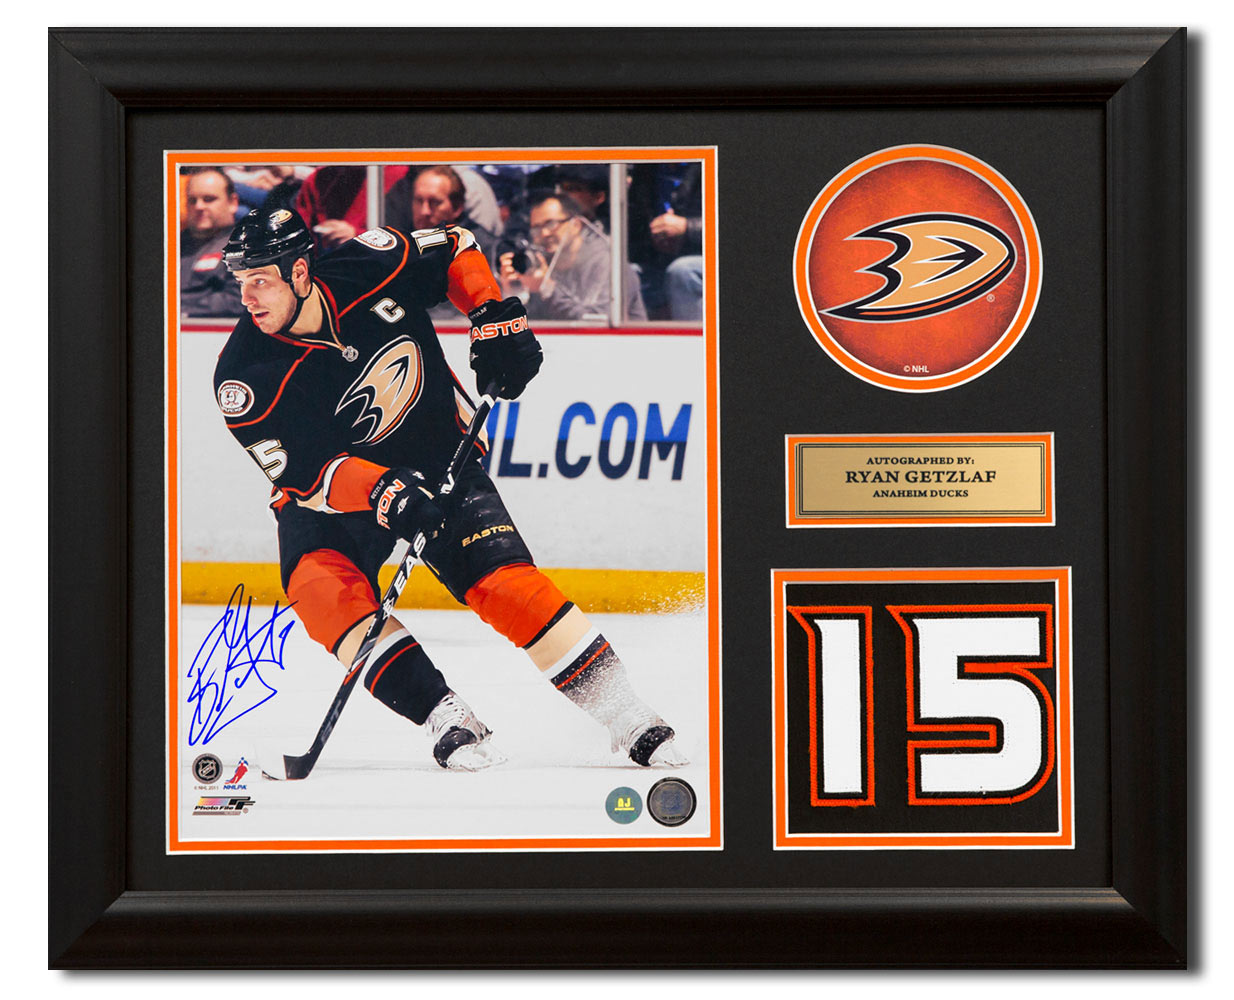 4b920681b7f Ryan Getzlaf Anaheim Ducks Signed Franchise Jersey Number 23x19 Frame